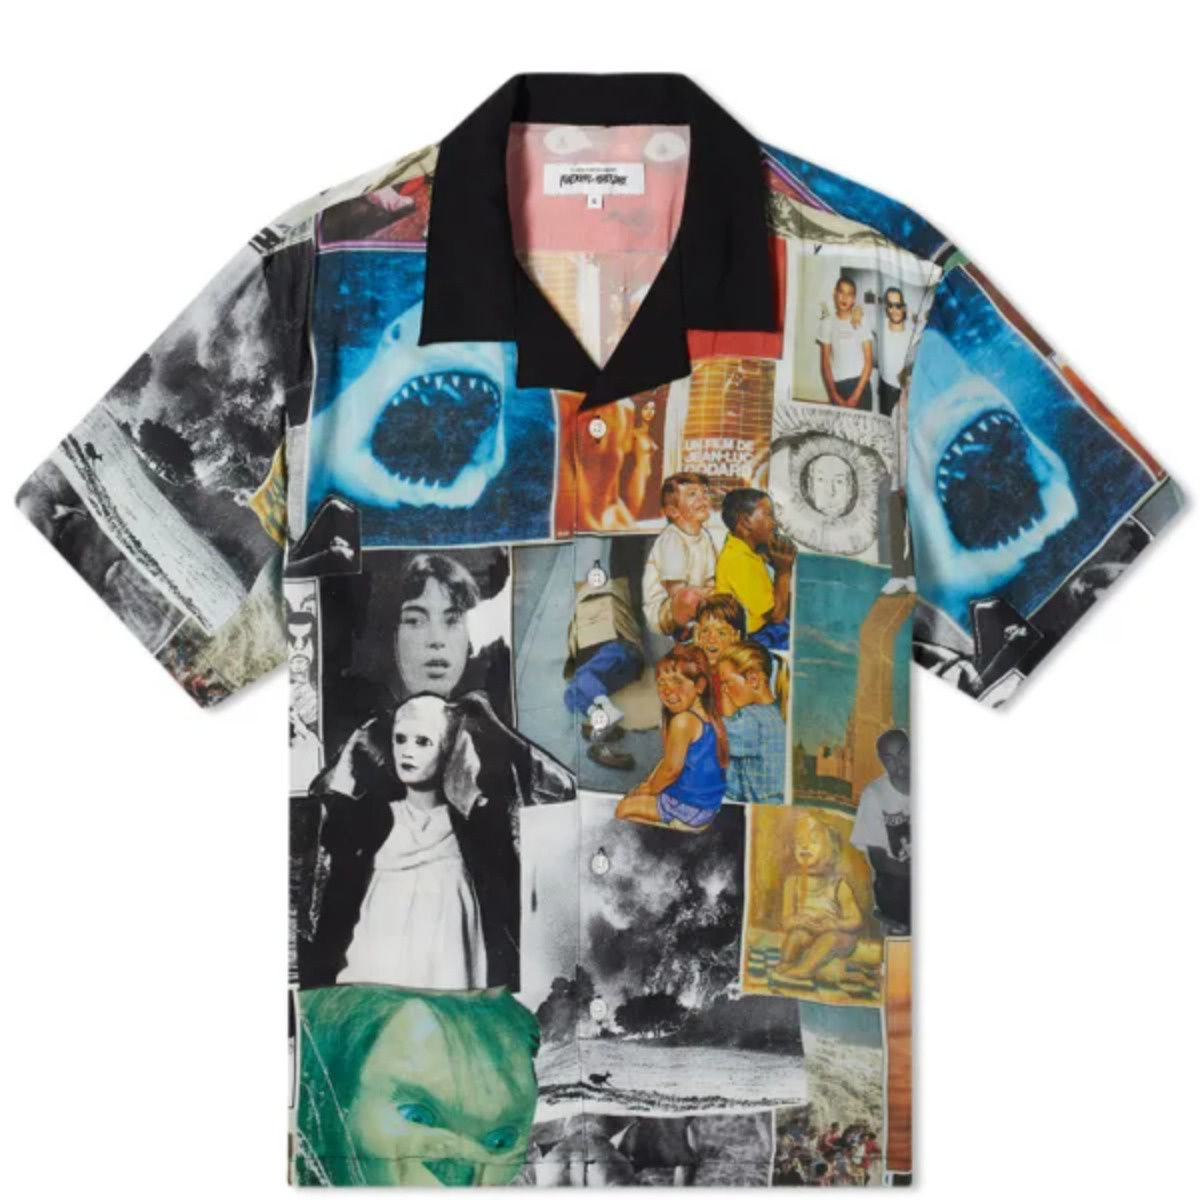 Fucking Awesome Collage 2 Club Shirt Black/White